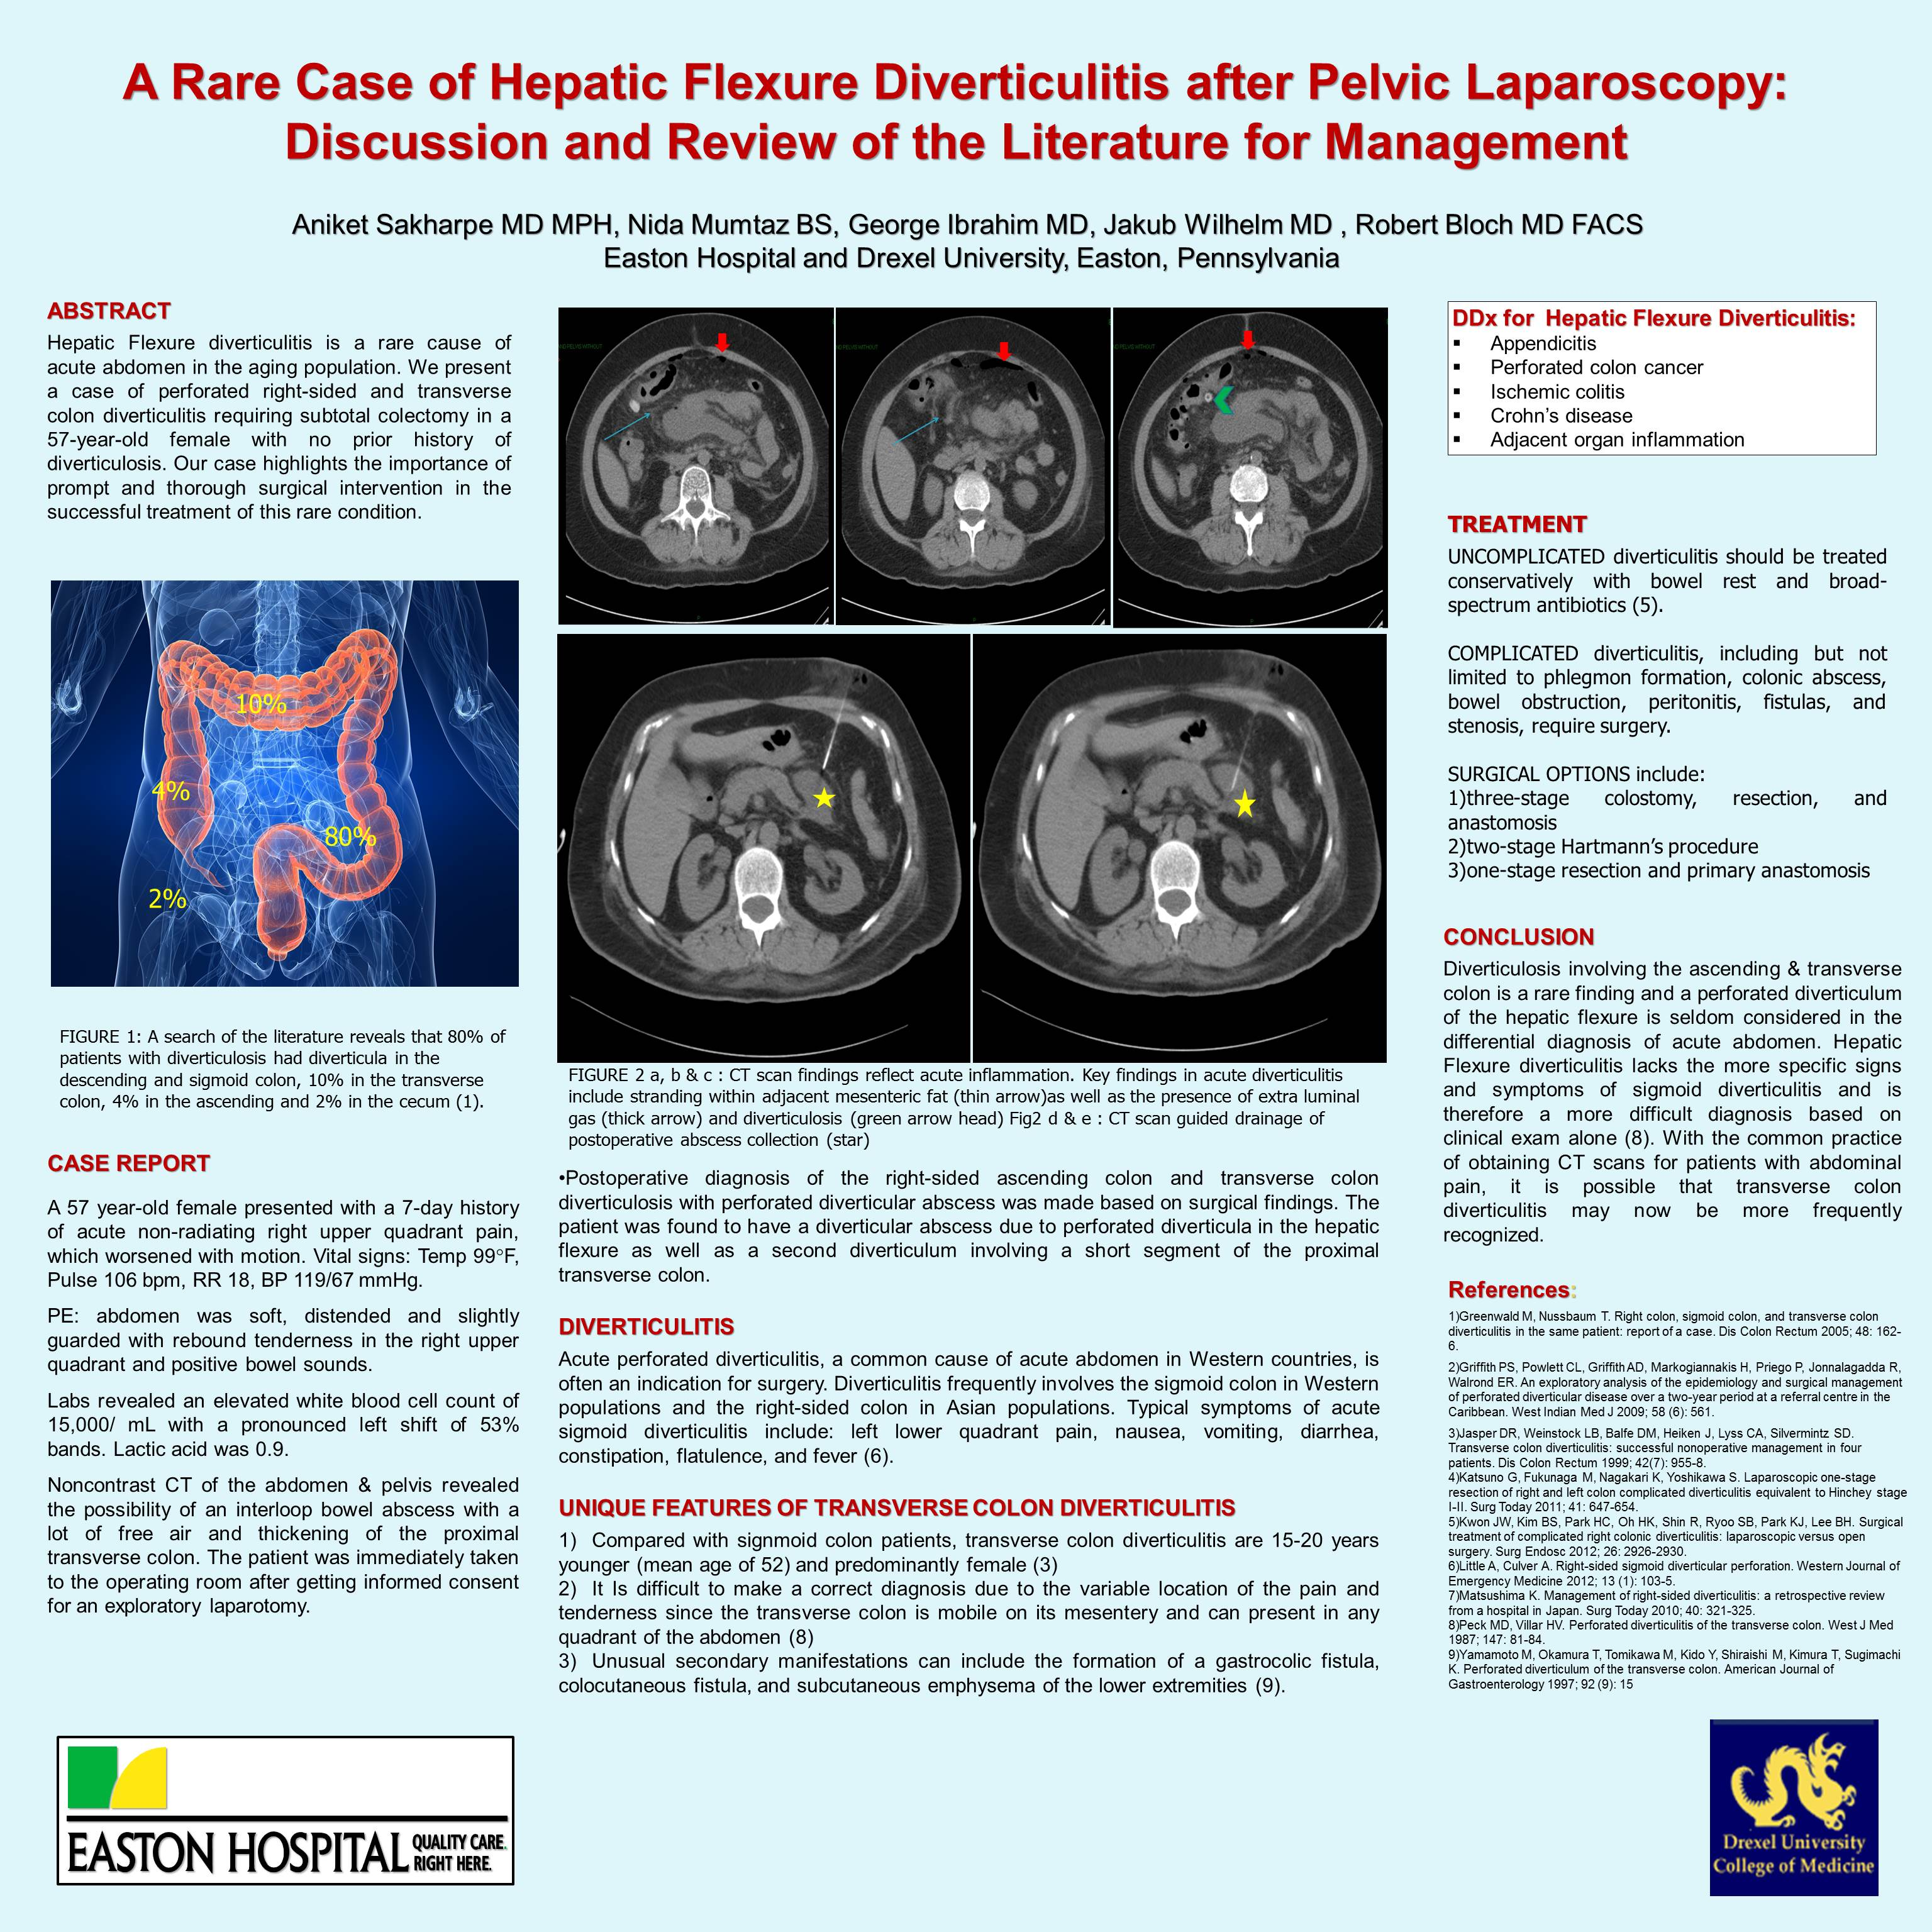 A Rare Case Of Hepatic Flexure Diverticulitis After Pelvic Laparoscopy And Review Of Literature For Management Sages Abstract Archives